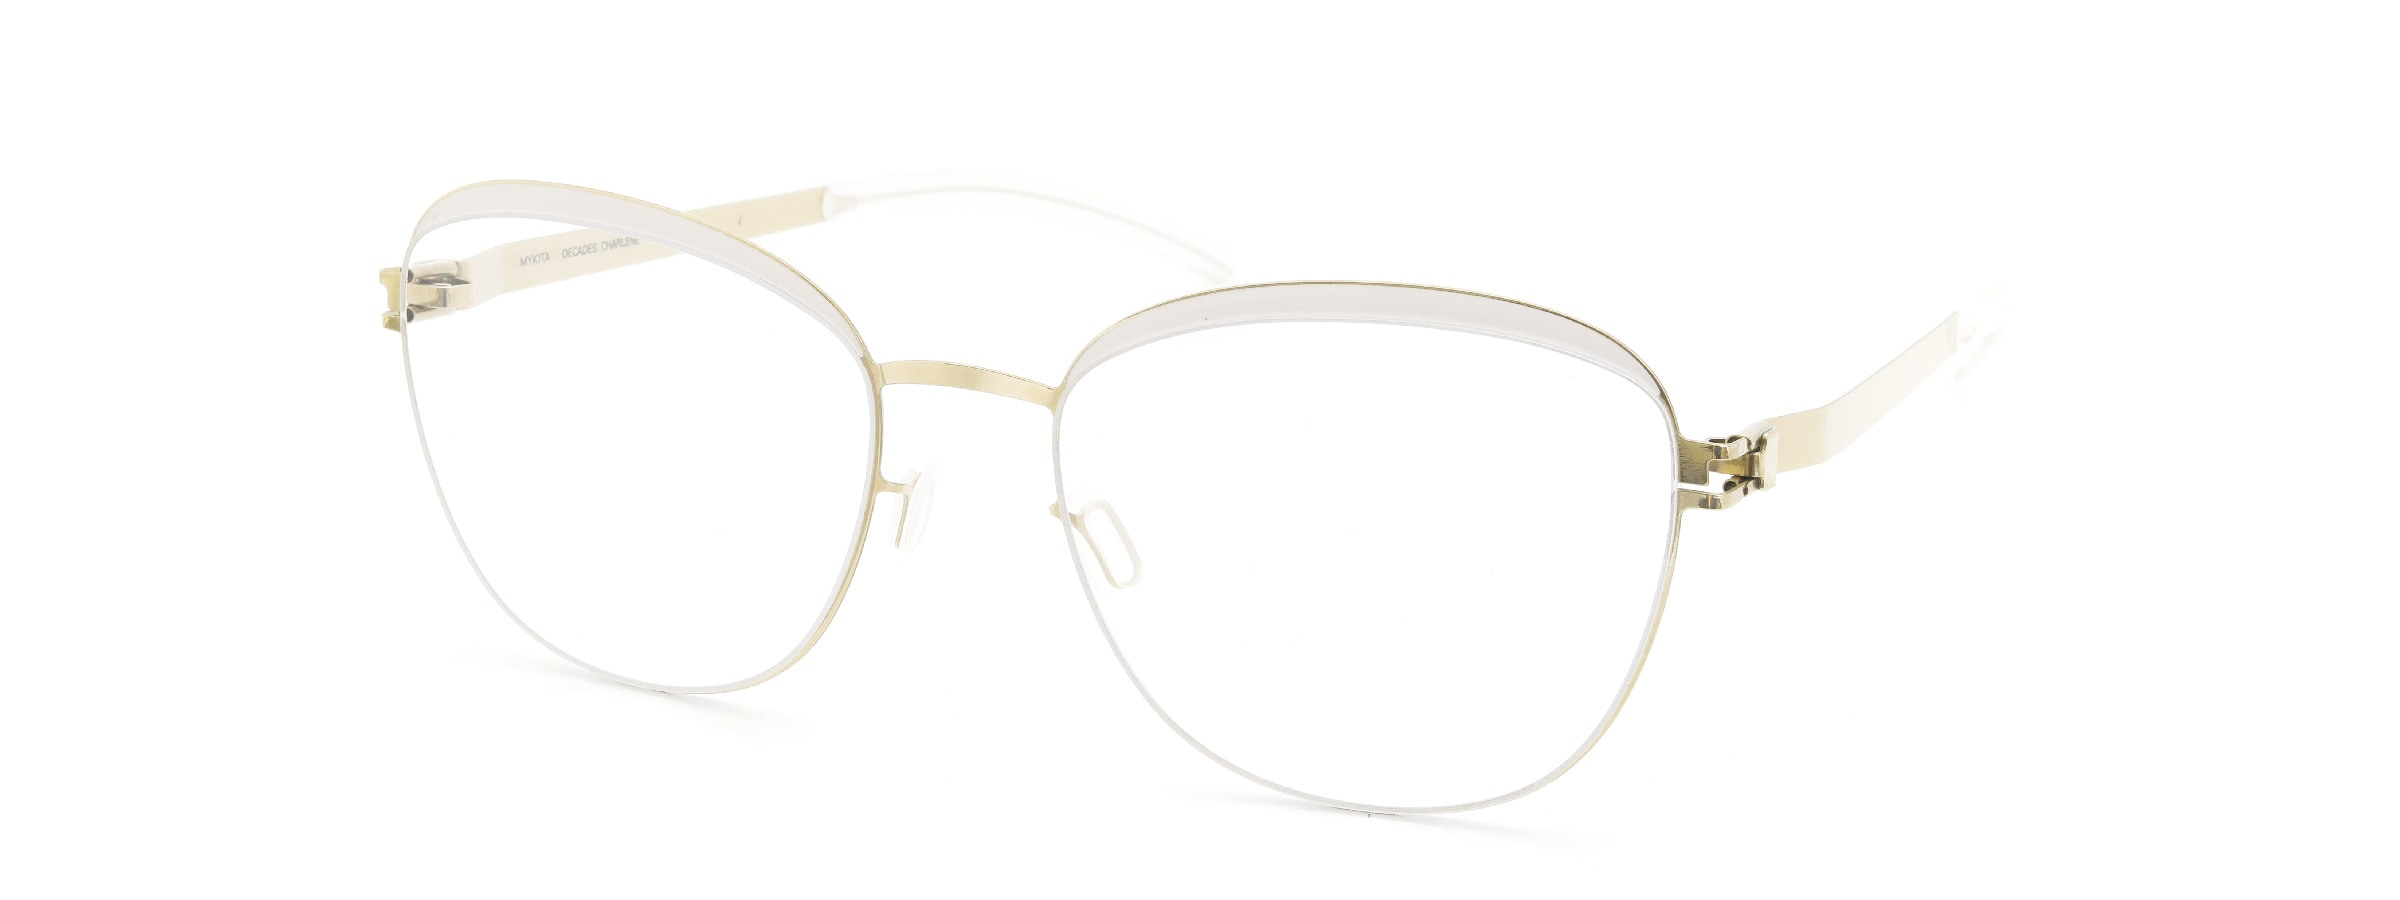 MYKITA [DECADES] CHARLENE